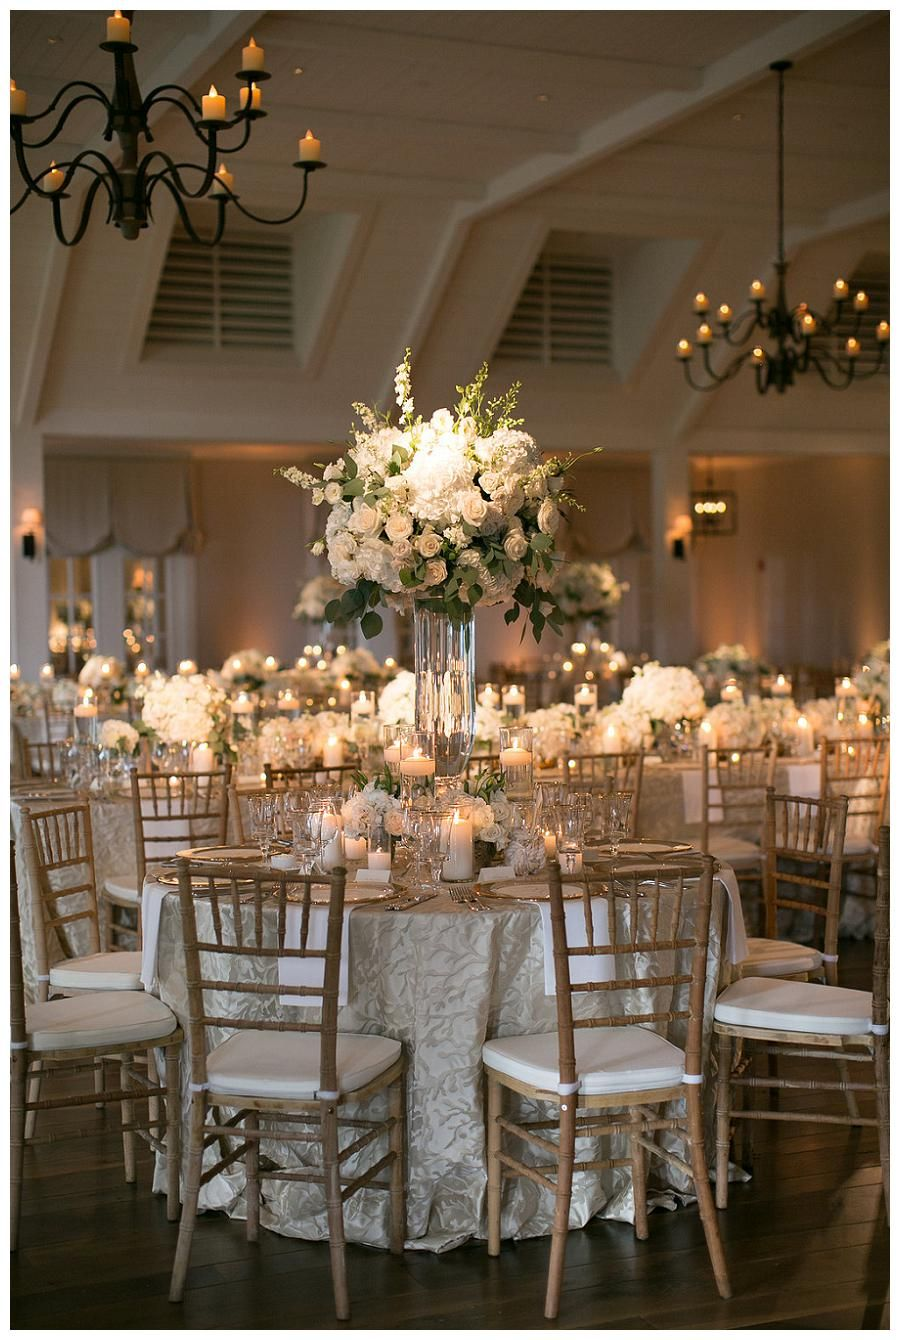 Gold Ivory And White Wedding Reception Decor With Fls In Gl Vessels Place Settings Of Rimmed Crystal Chargers